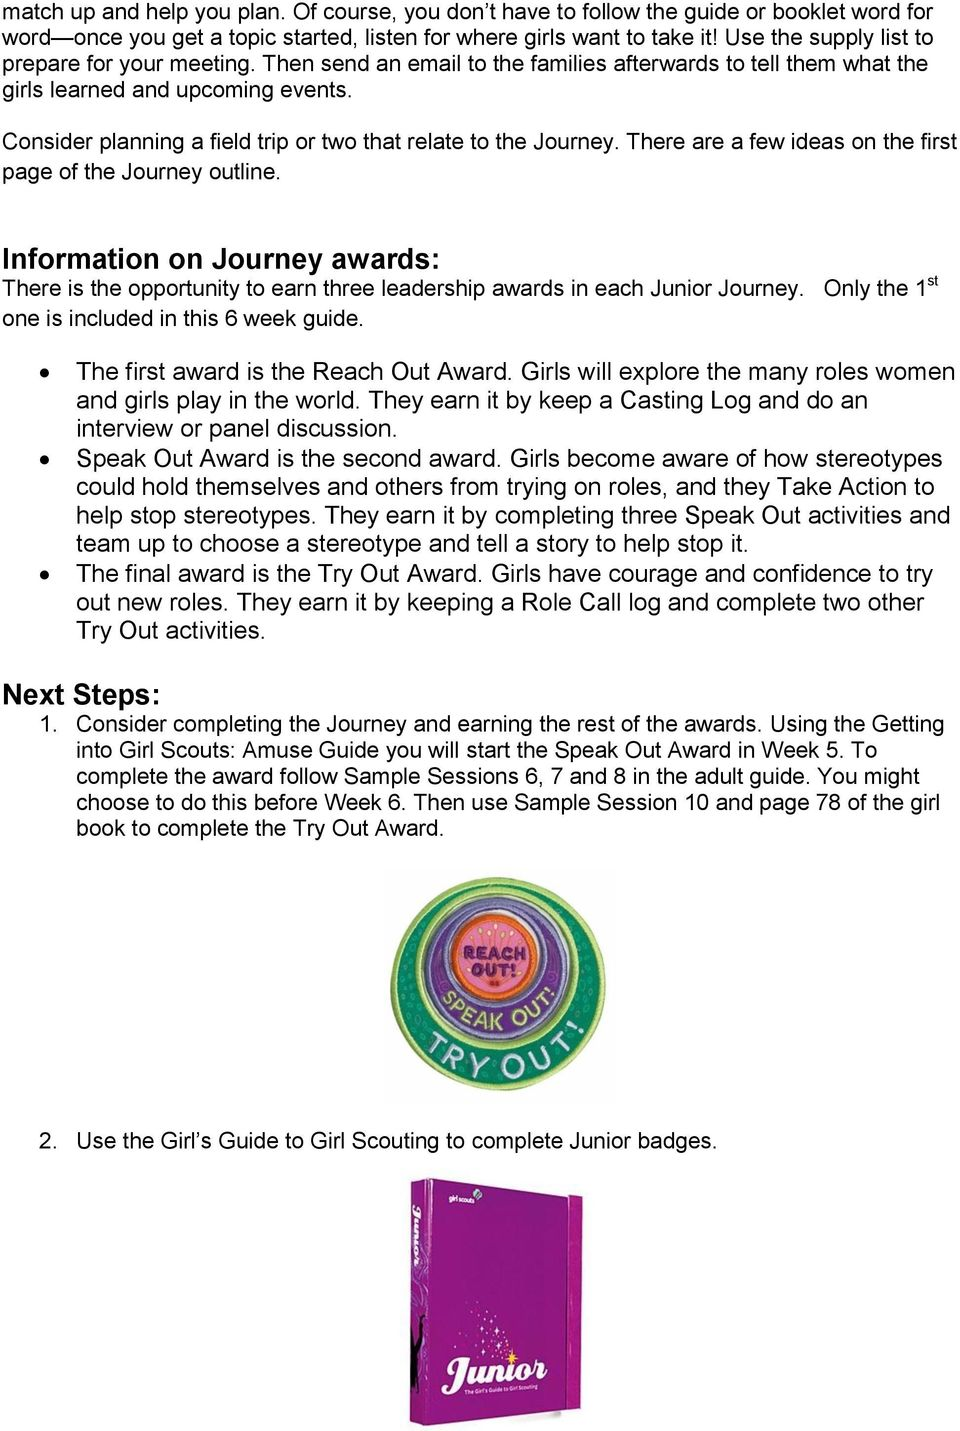 Consider planning a field trip or two that relate to the Journey. There are a few ideas on the first page of the Journey outline.